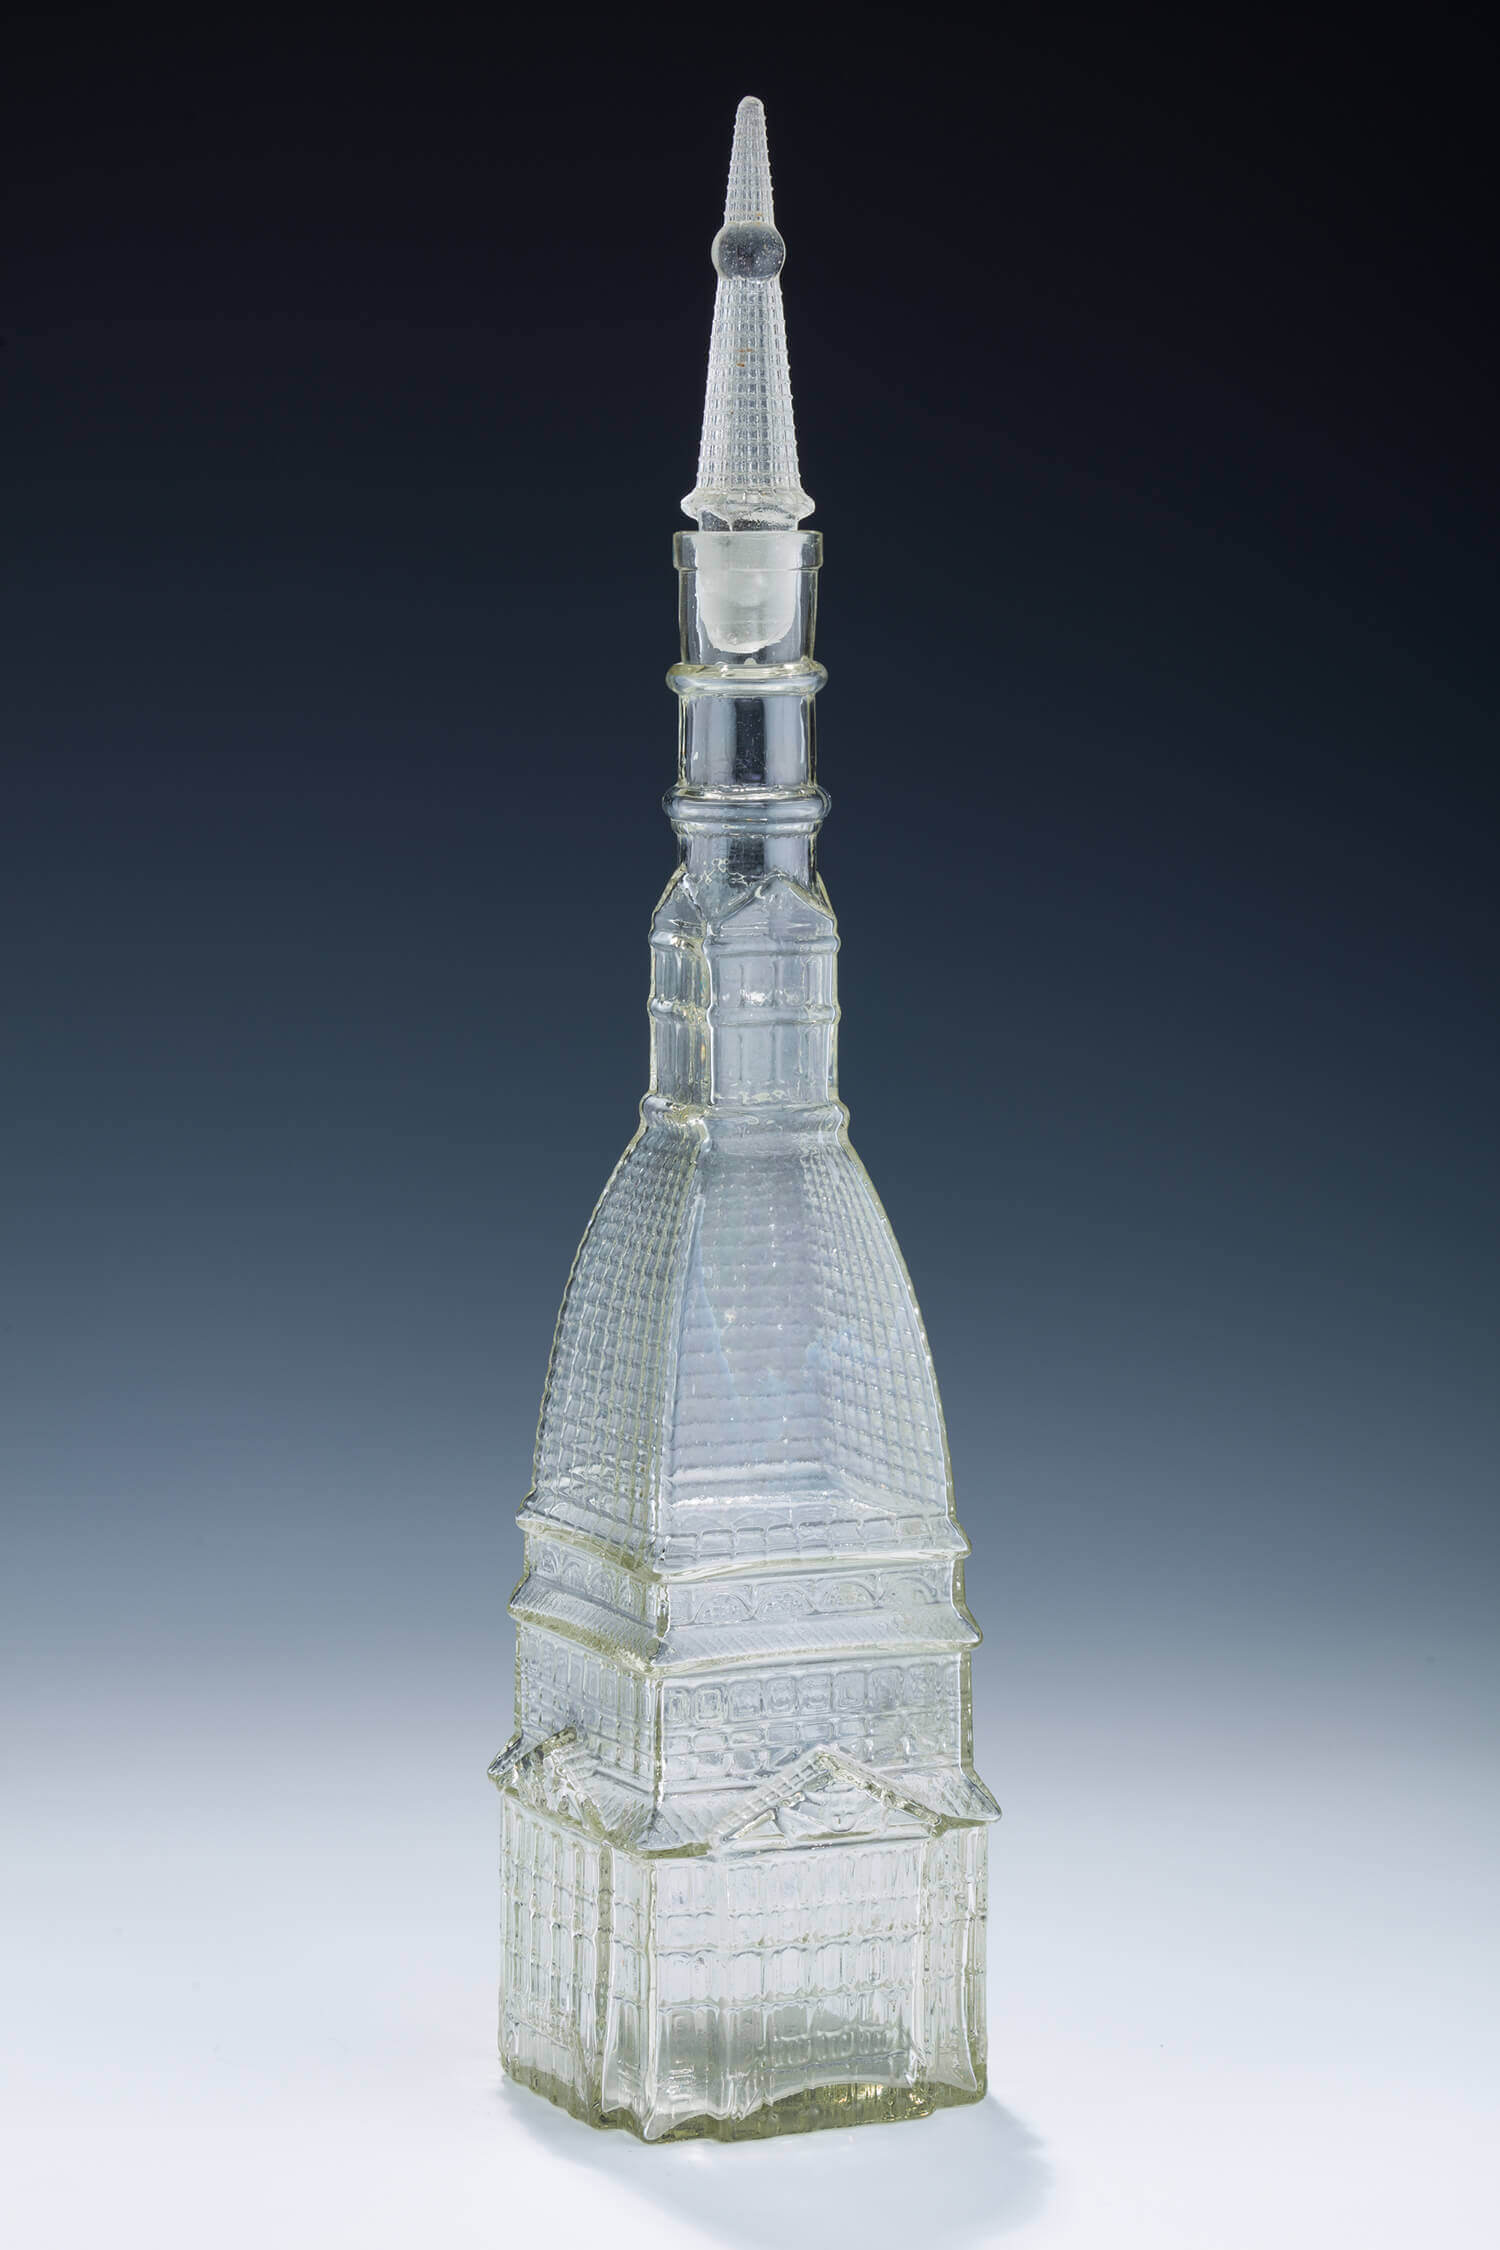 036. A LARGE GLASS WINE BOTTLE IN THE SHAPE OF THE TURIN SYNAGOGUE